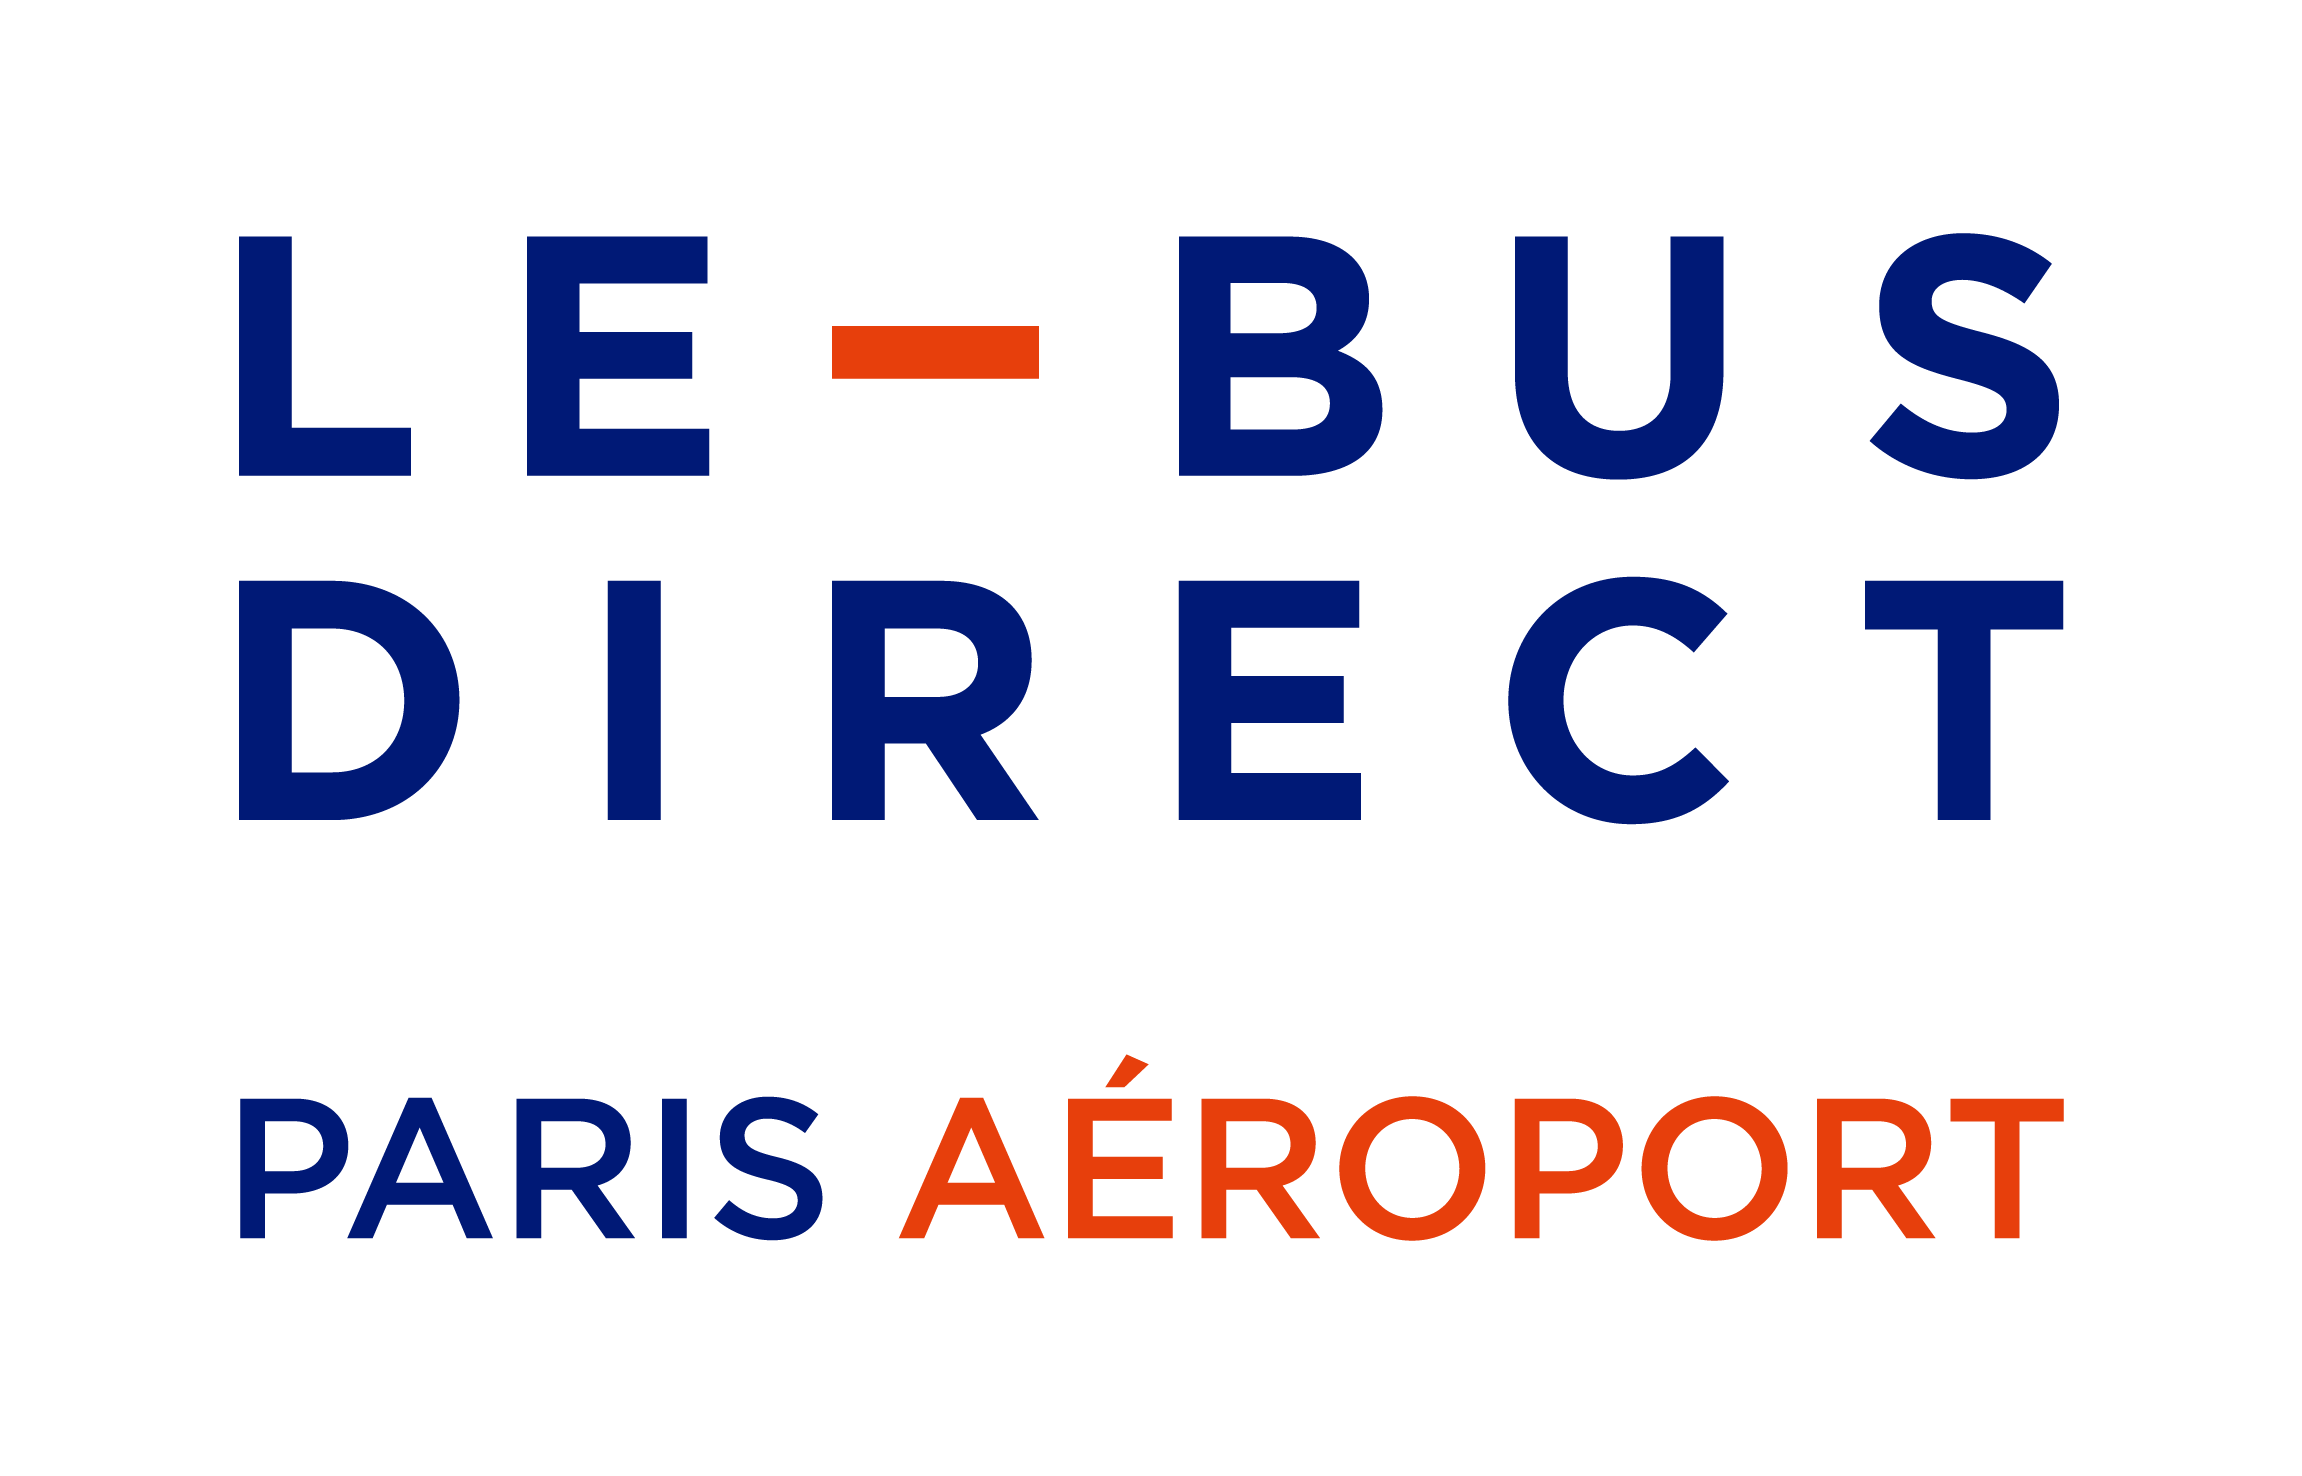 Tarif Parking Gare Montparnasse Le Bus Direct Orly Car Air France Navette Aéroport Dorly